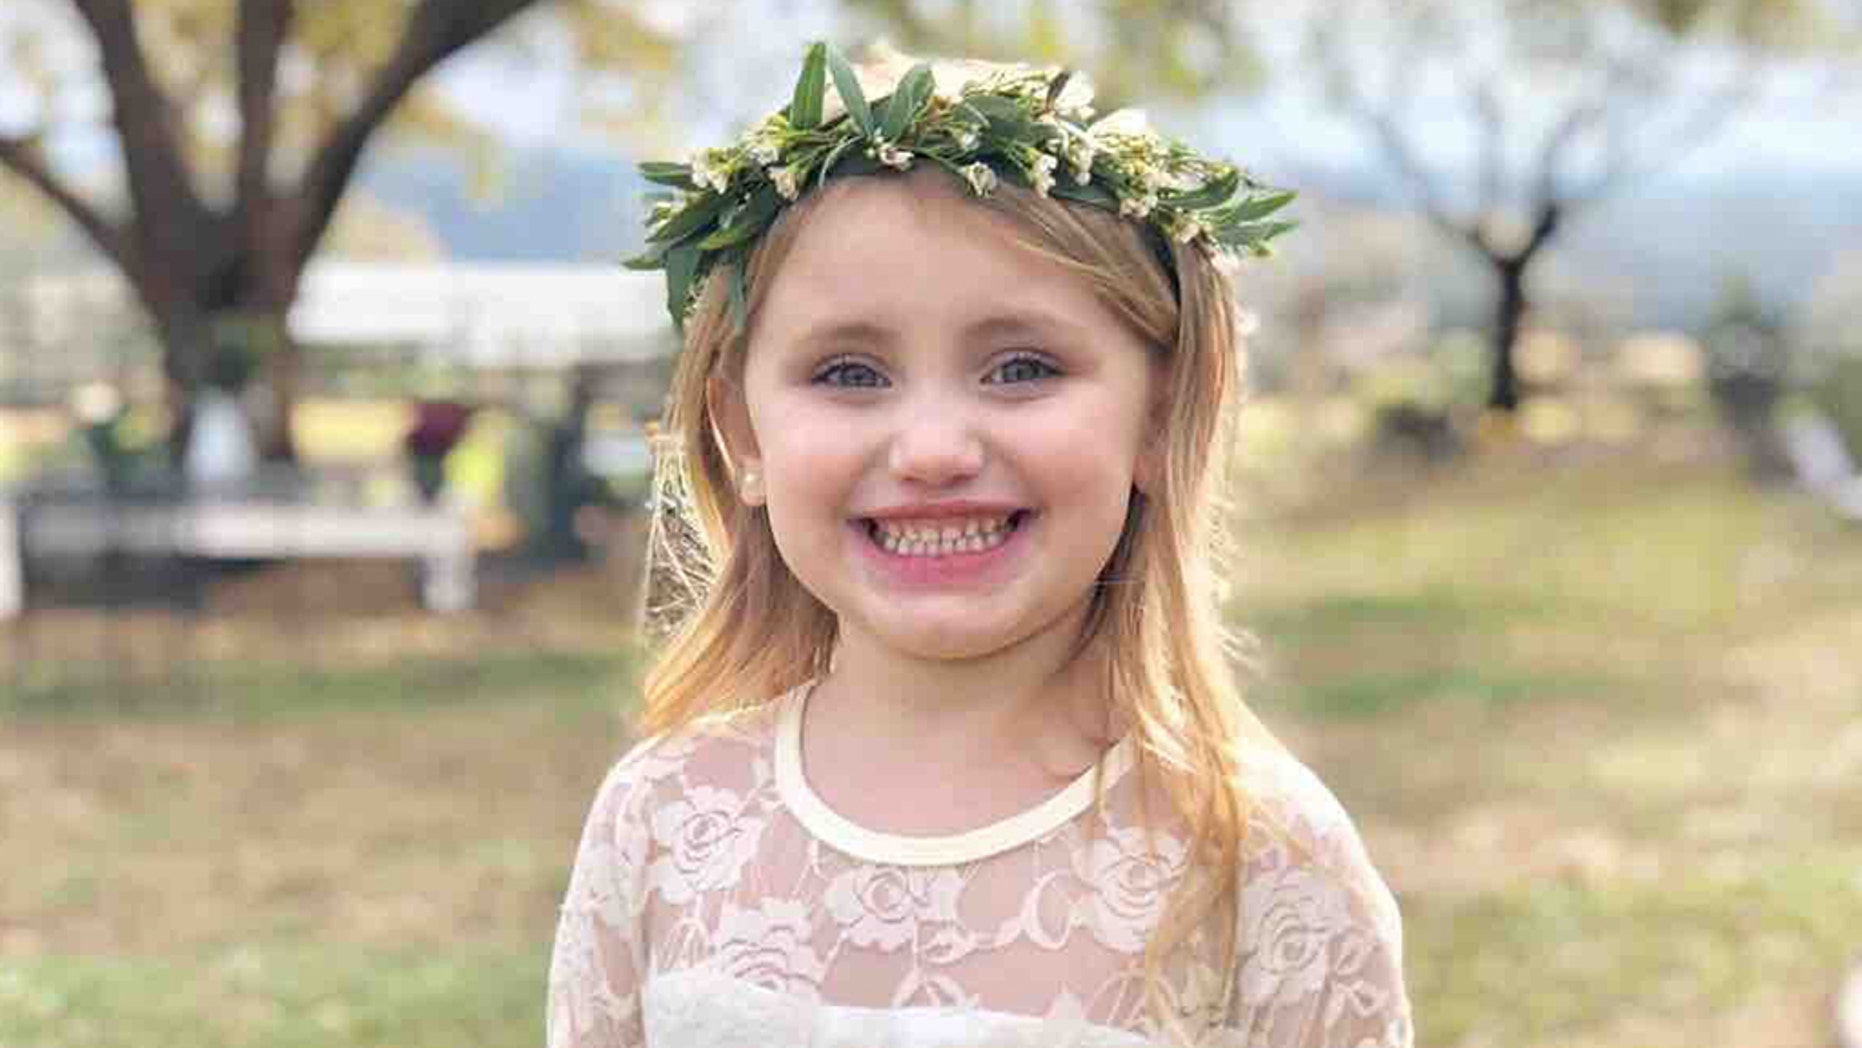 Westlake Legal Group millie-drew-GoFundMe Georgia girl, 6, dies after brother accidentally shoots her in head, police say fox-news/us/us-regions/southeast/georgia fox-news/us/crime/police-and-law-enforcement fox news fnc/us fnc article 7e5e56e5-8ff6-5435-95cd-6b5683bdc7ff